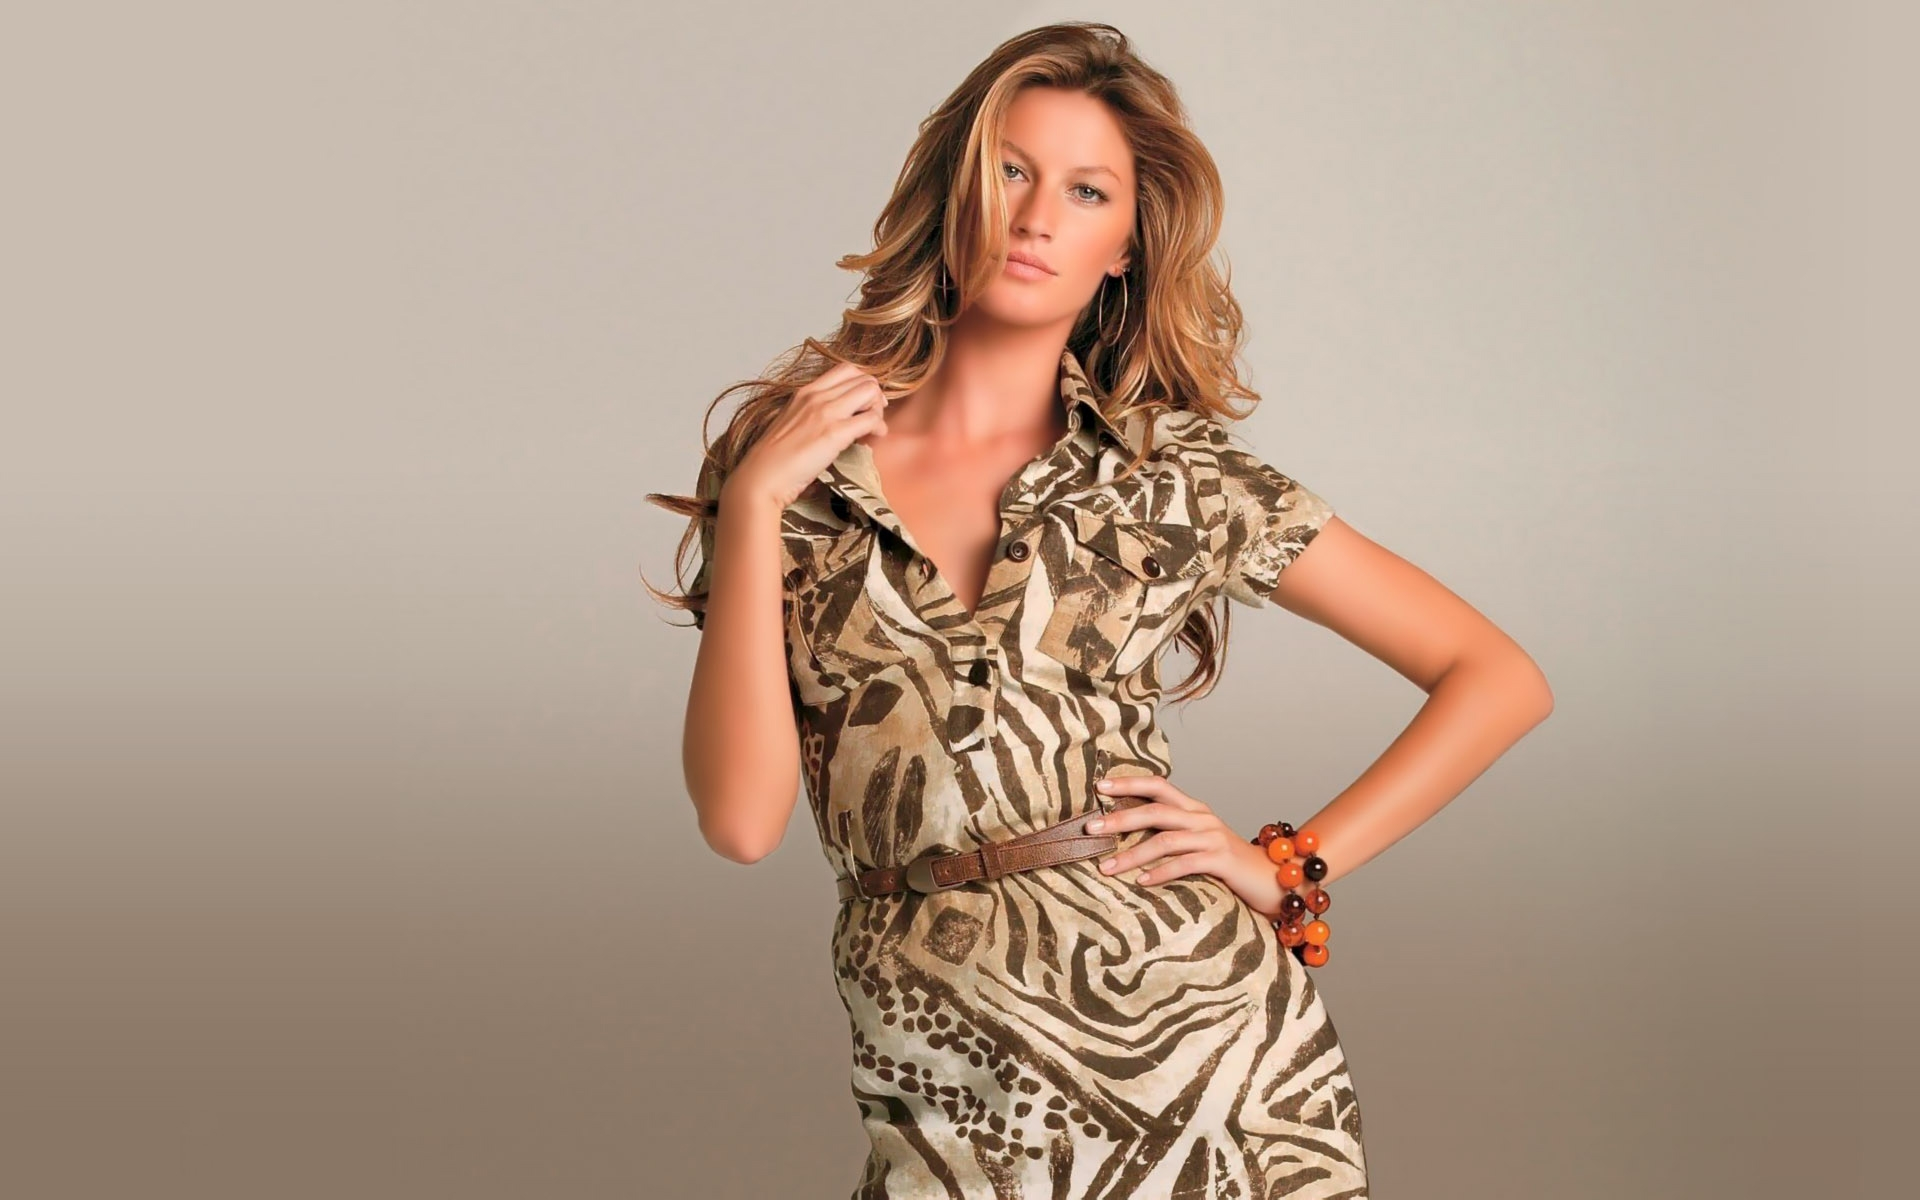 3d Call Of Duty 2 Wallpaper Gisele Bundchen Wallpapers Pictures Images